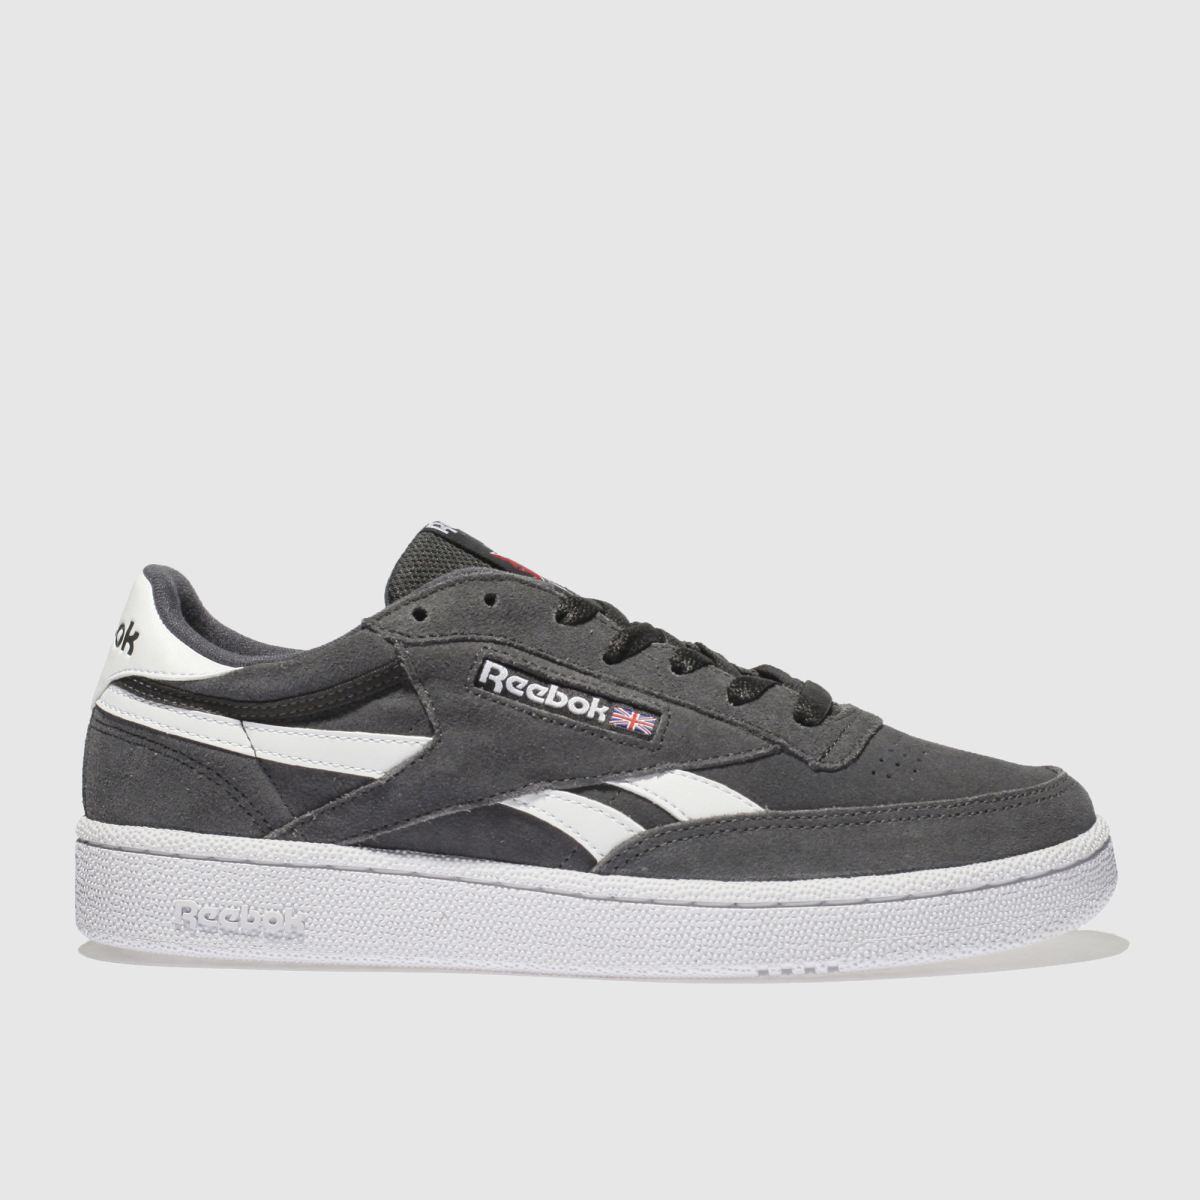 Reebok Dark Grey Revenge Trainers